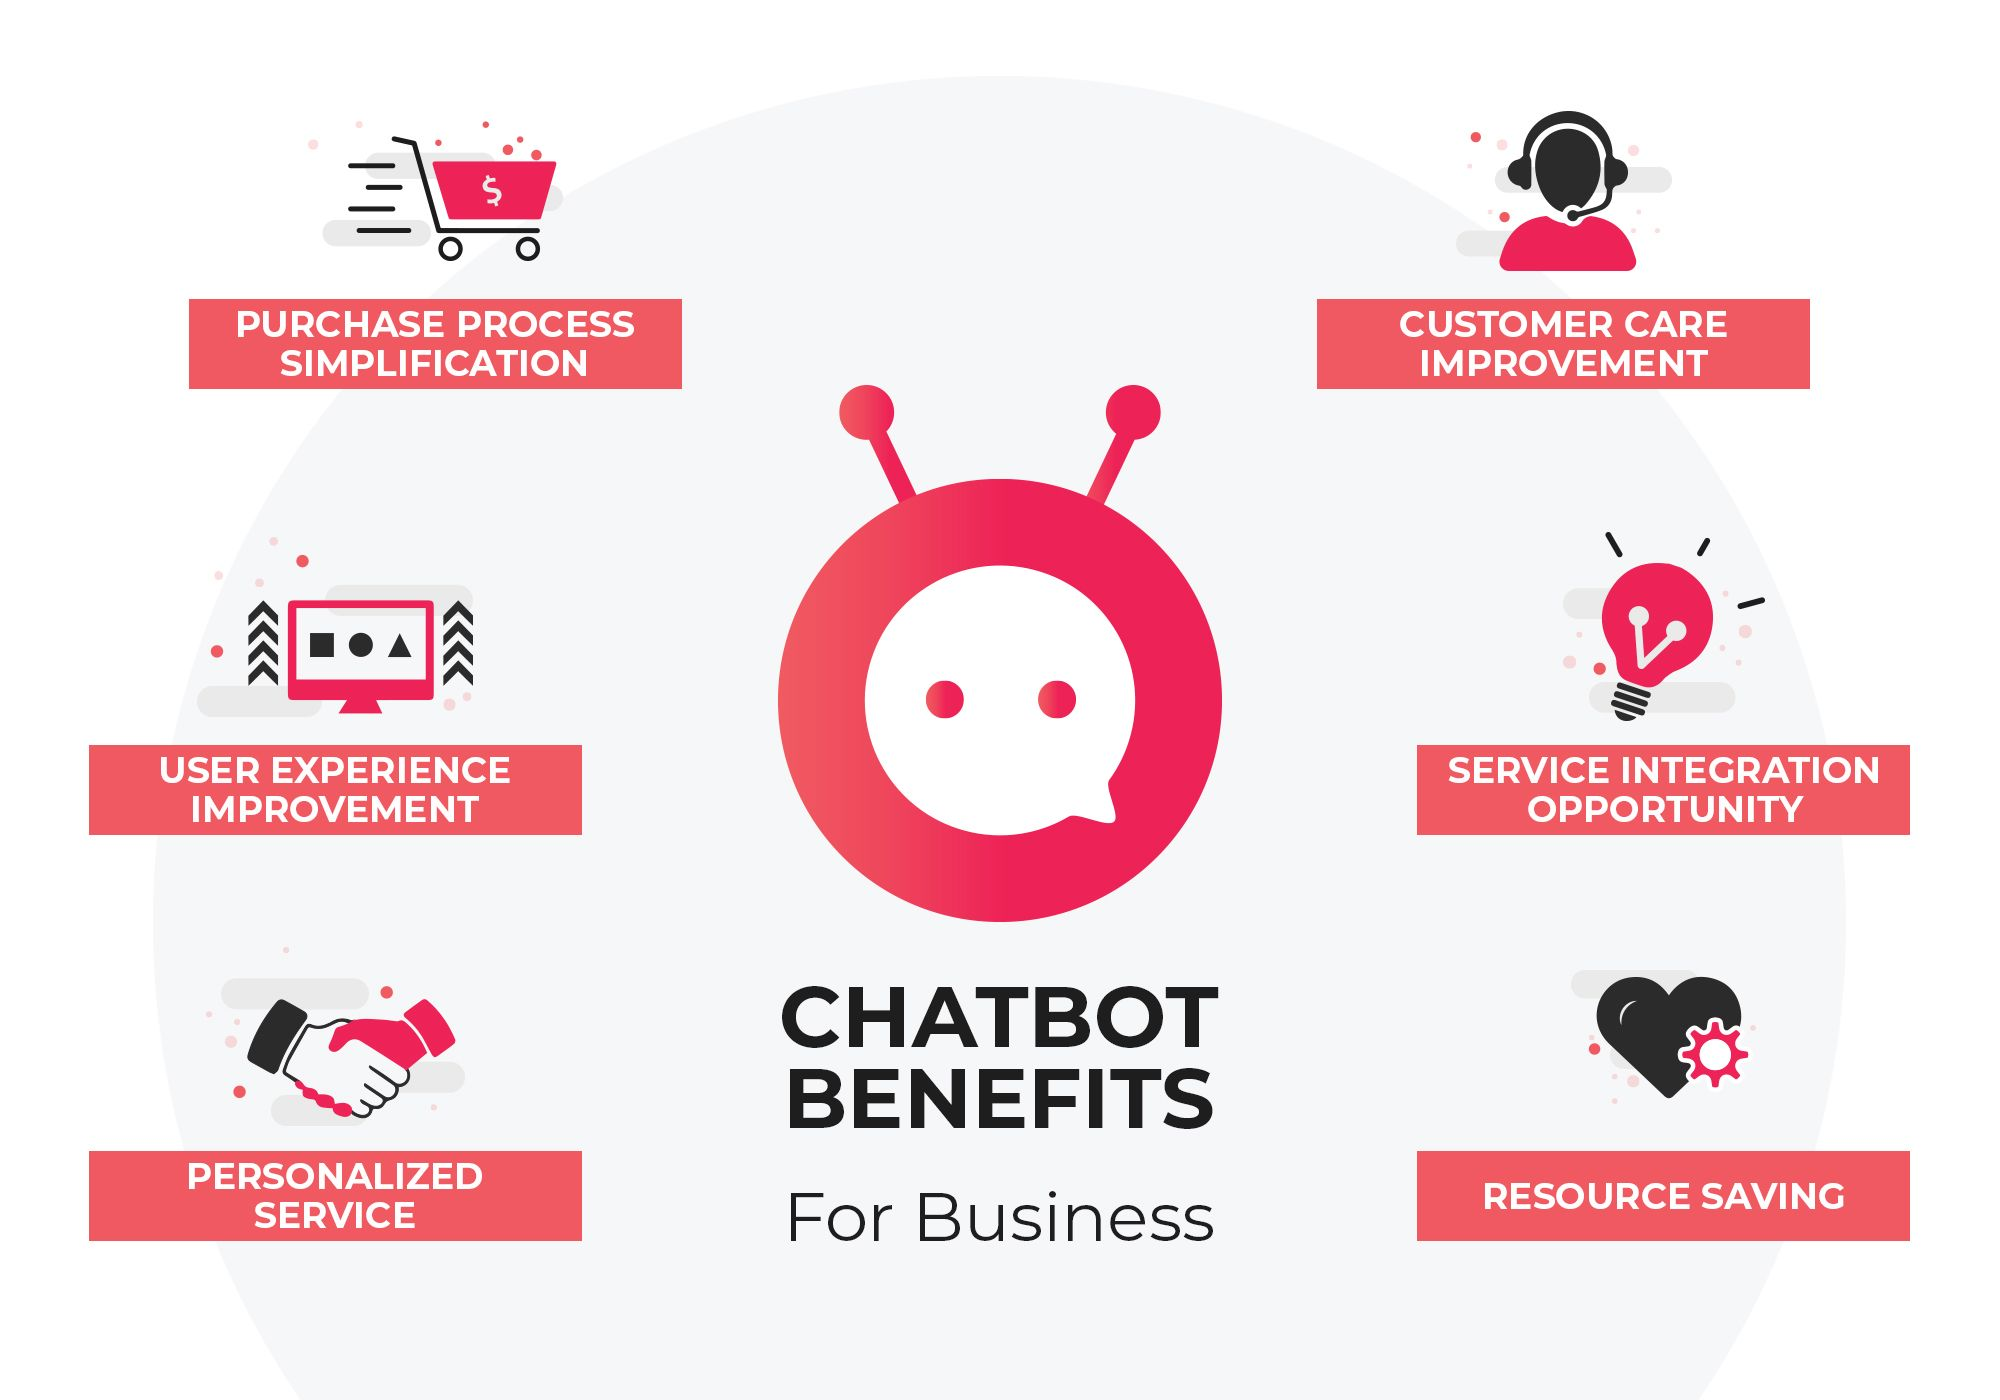 Chatbot Benefits Chatbot Business Benefits Business Resources